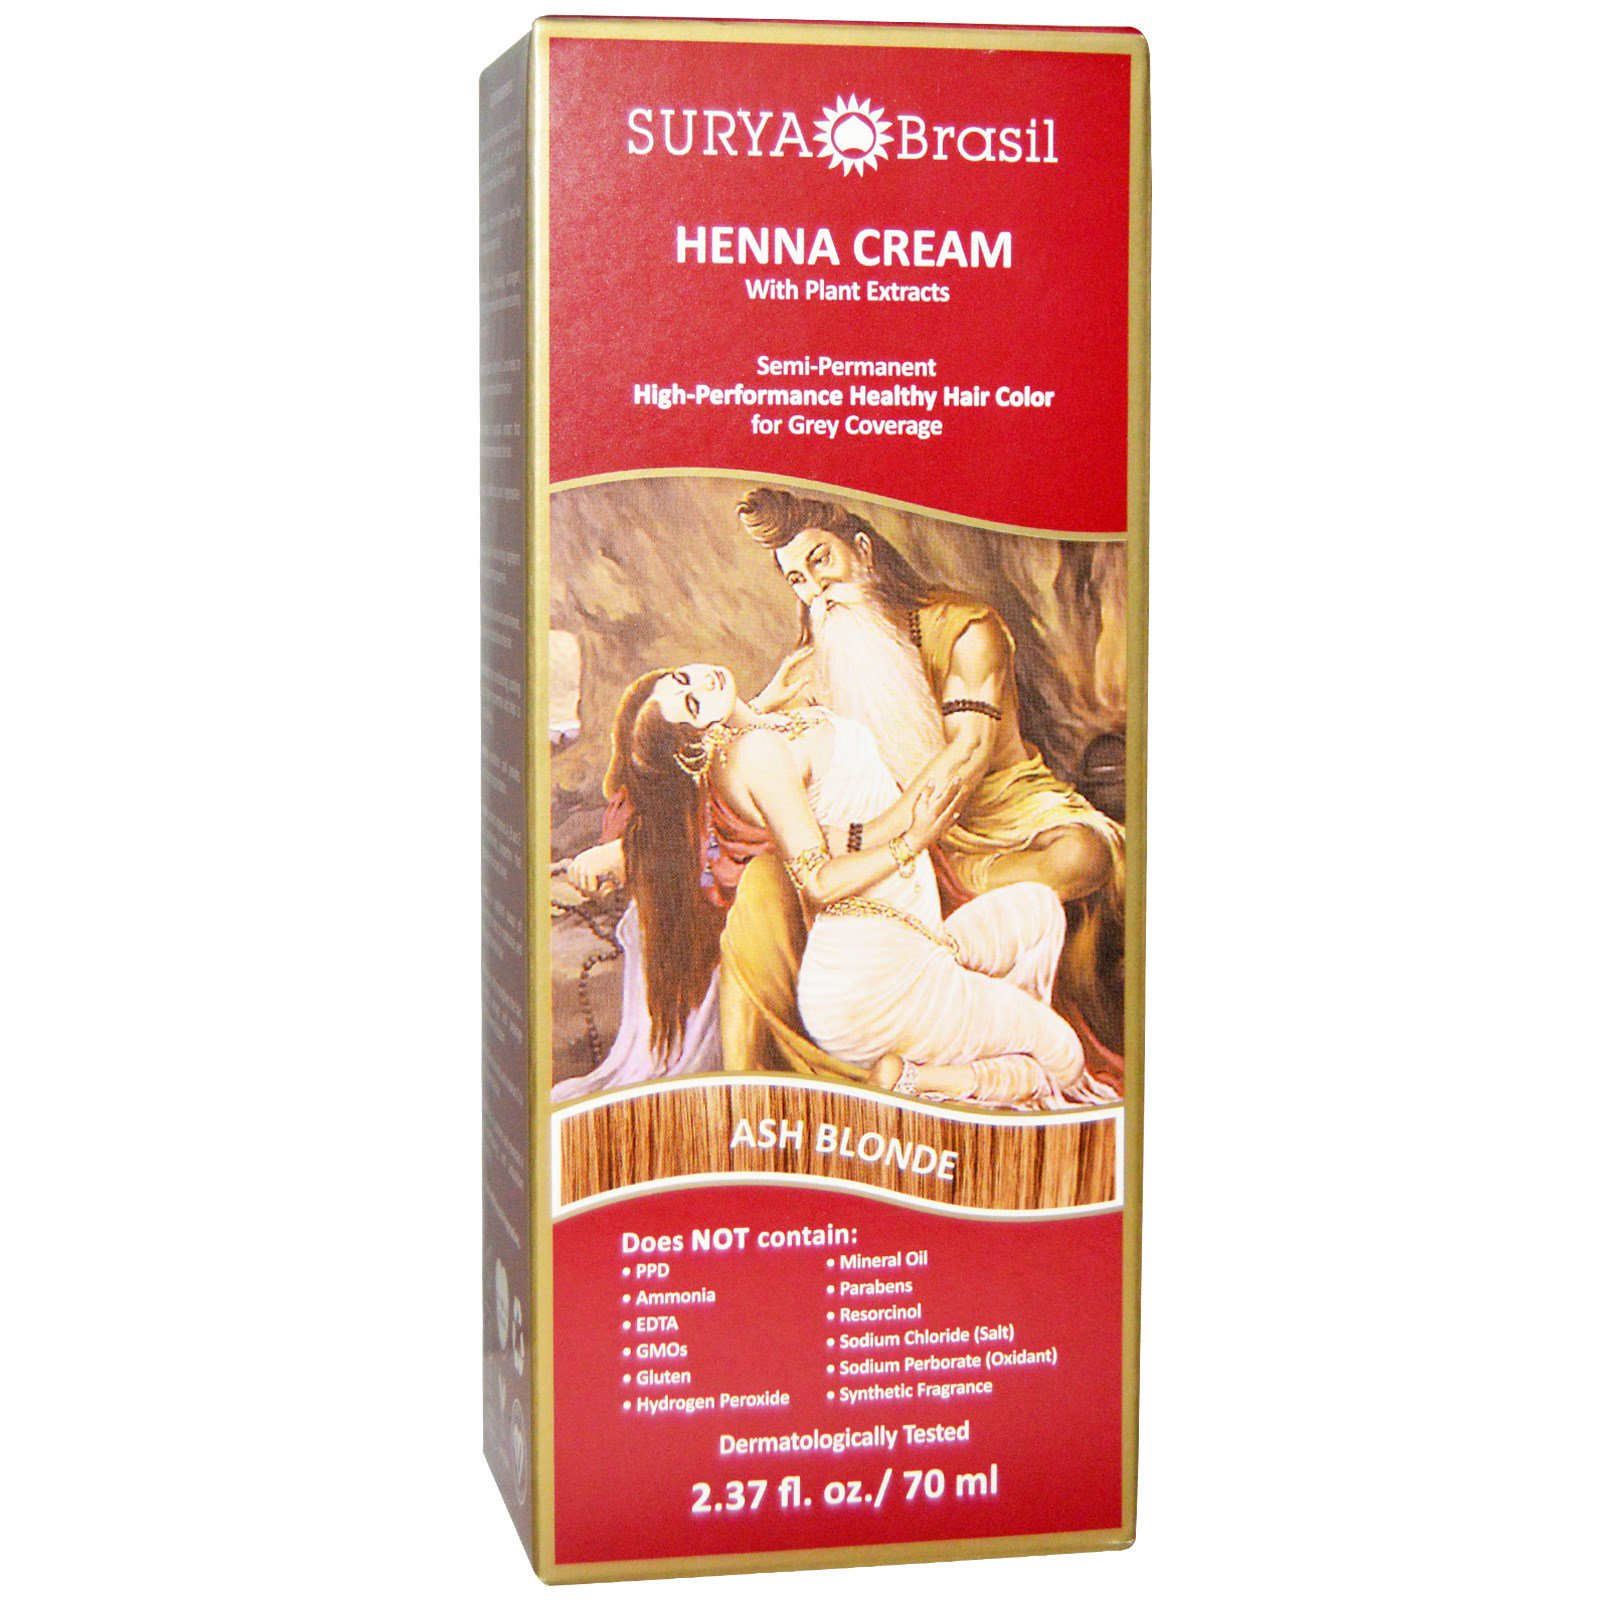 Surya Henna, Henna Cream, Hair Color and Conditioner, Ash Blonde, 2.37 fl oz (pack of 4)